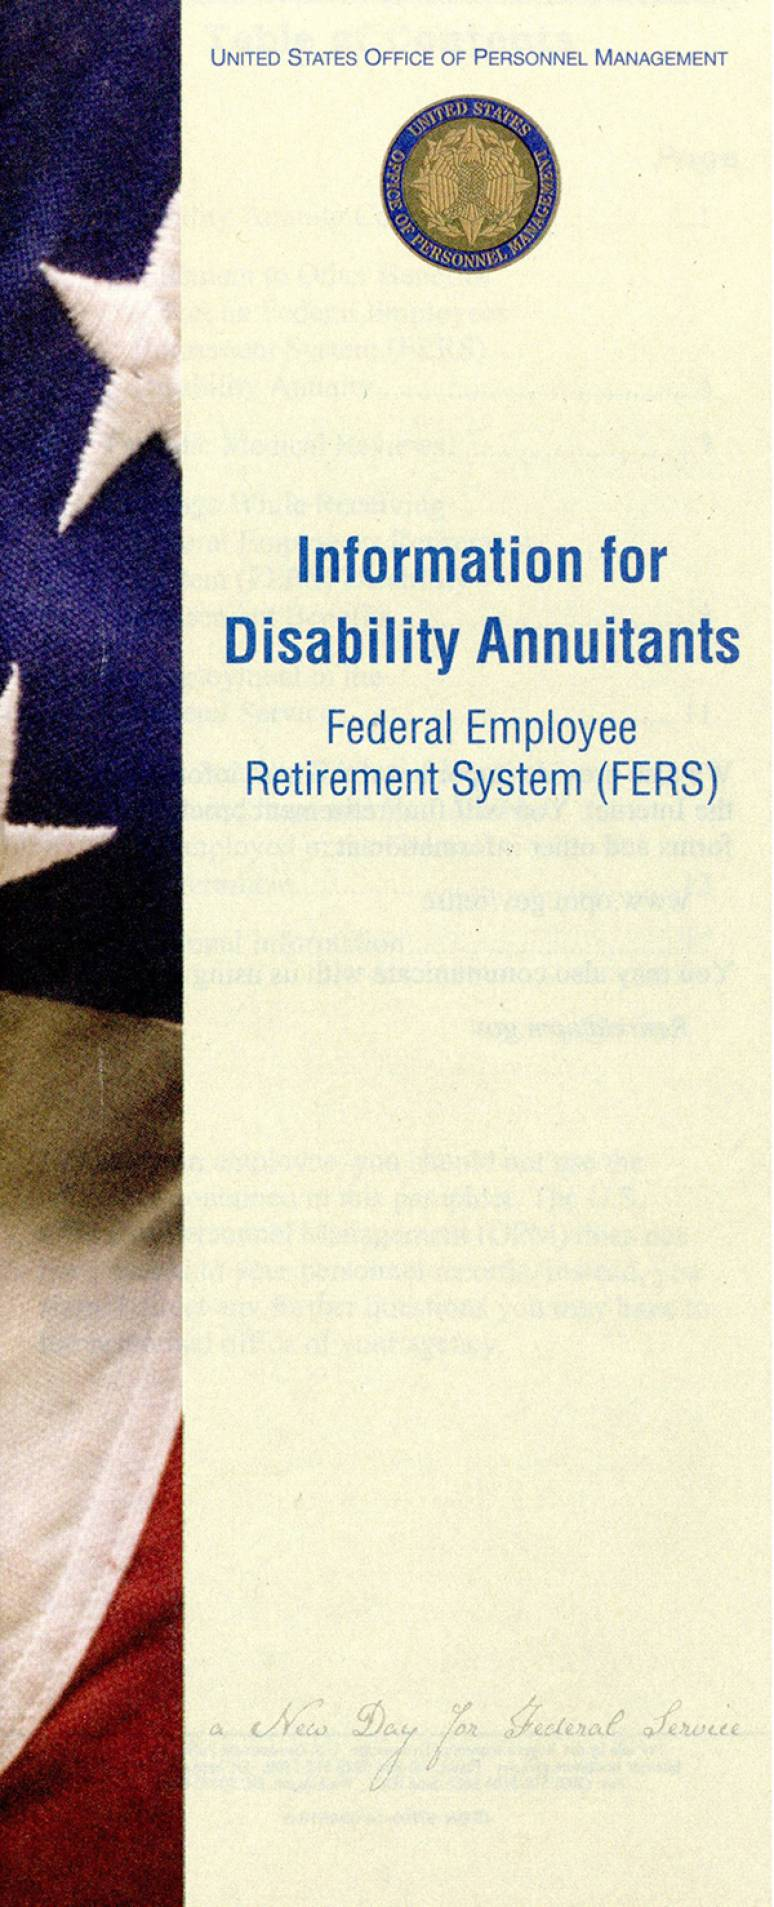 Information for Disability Annuitants: Federal Employee Retirement System (FERS)